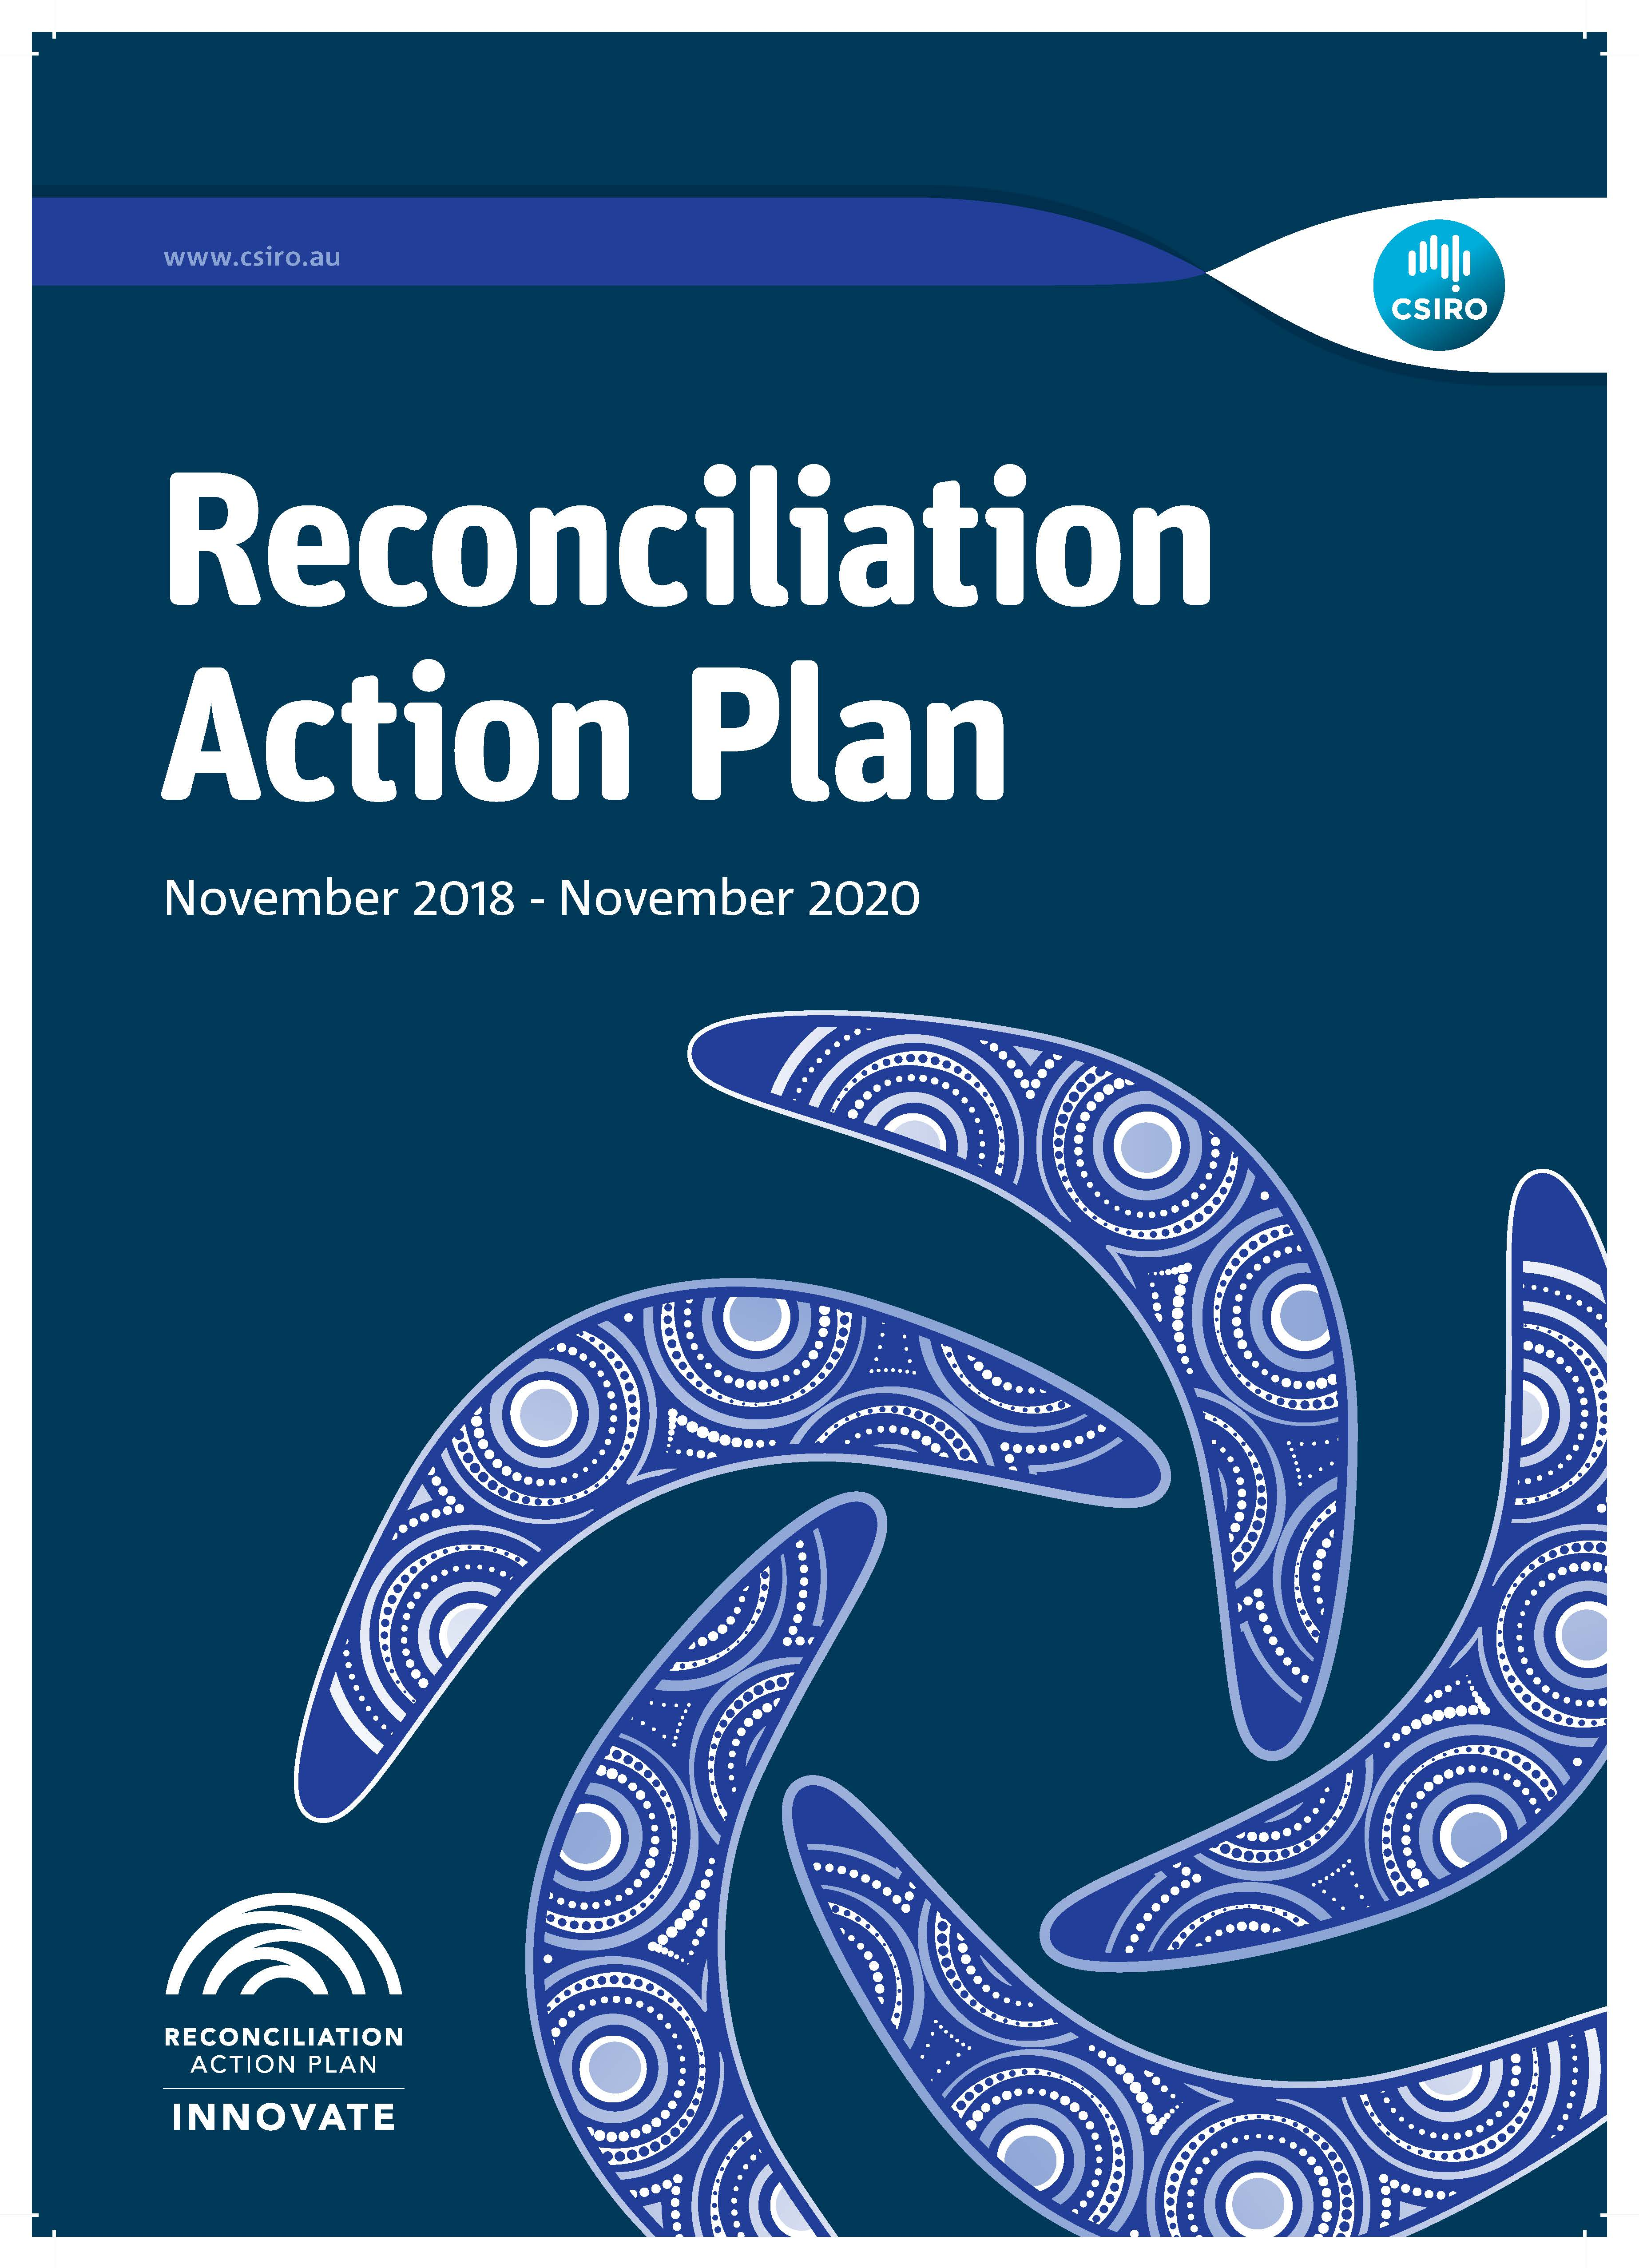 Image of the front cover of CSIRO's Reconciliation Action Plan 2018-2020